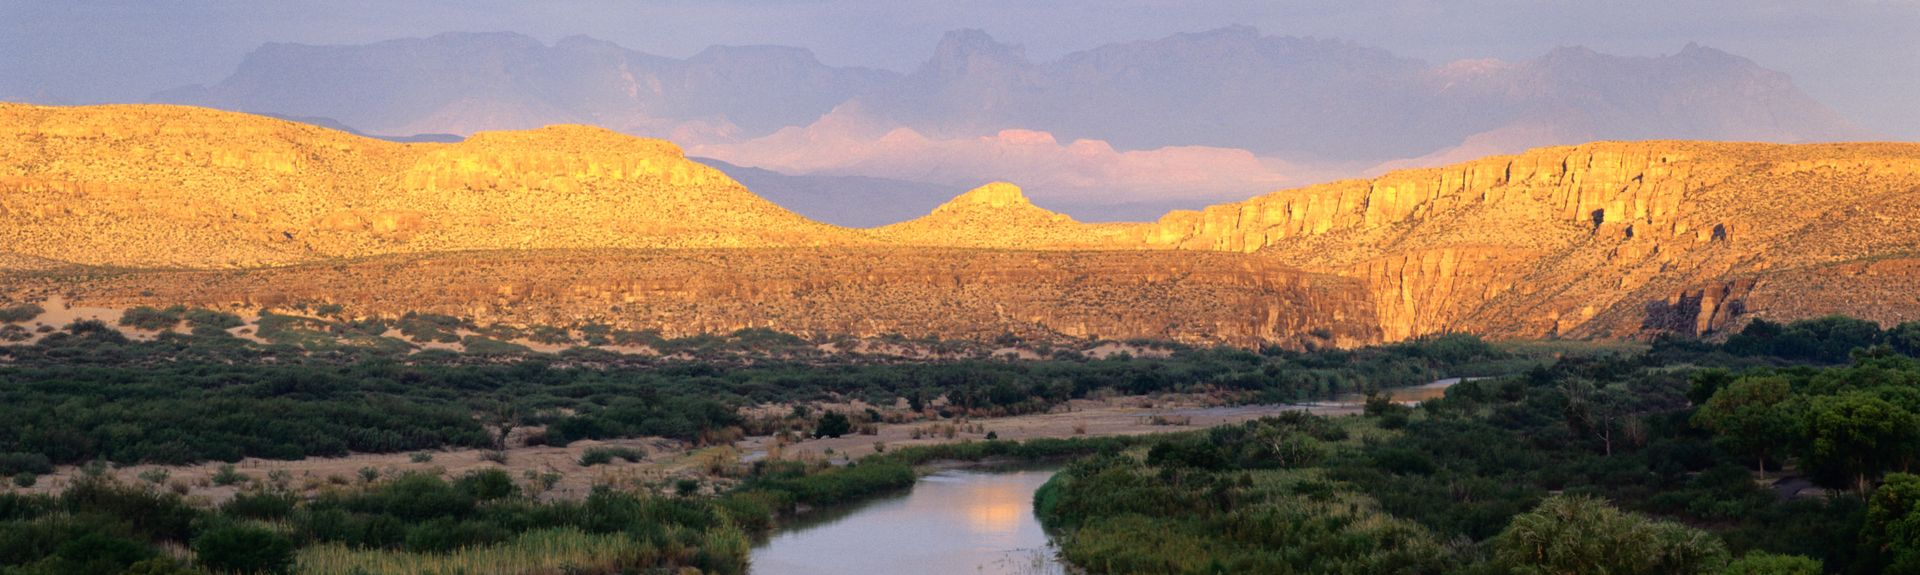 Big Bend National Park, Texas, United States of America